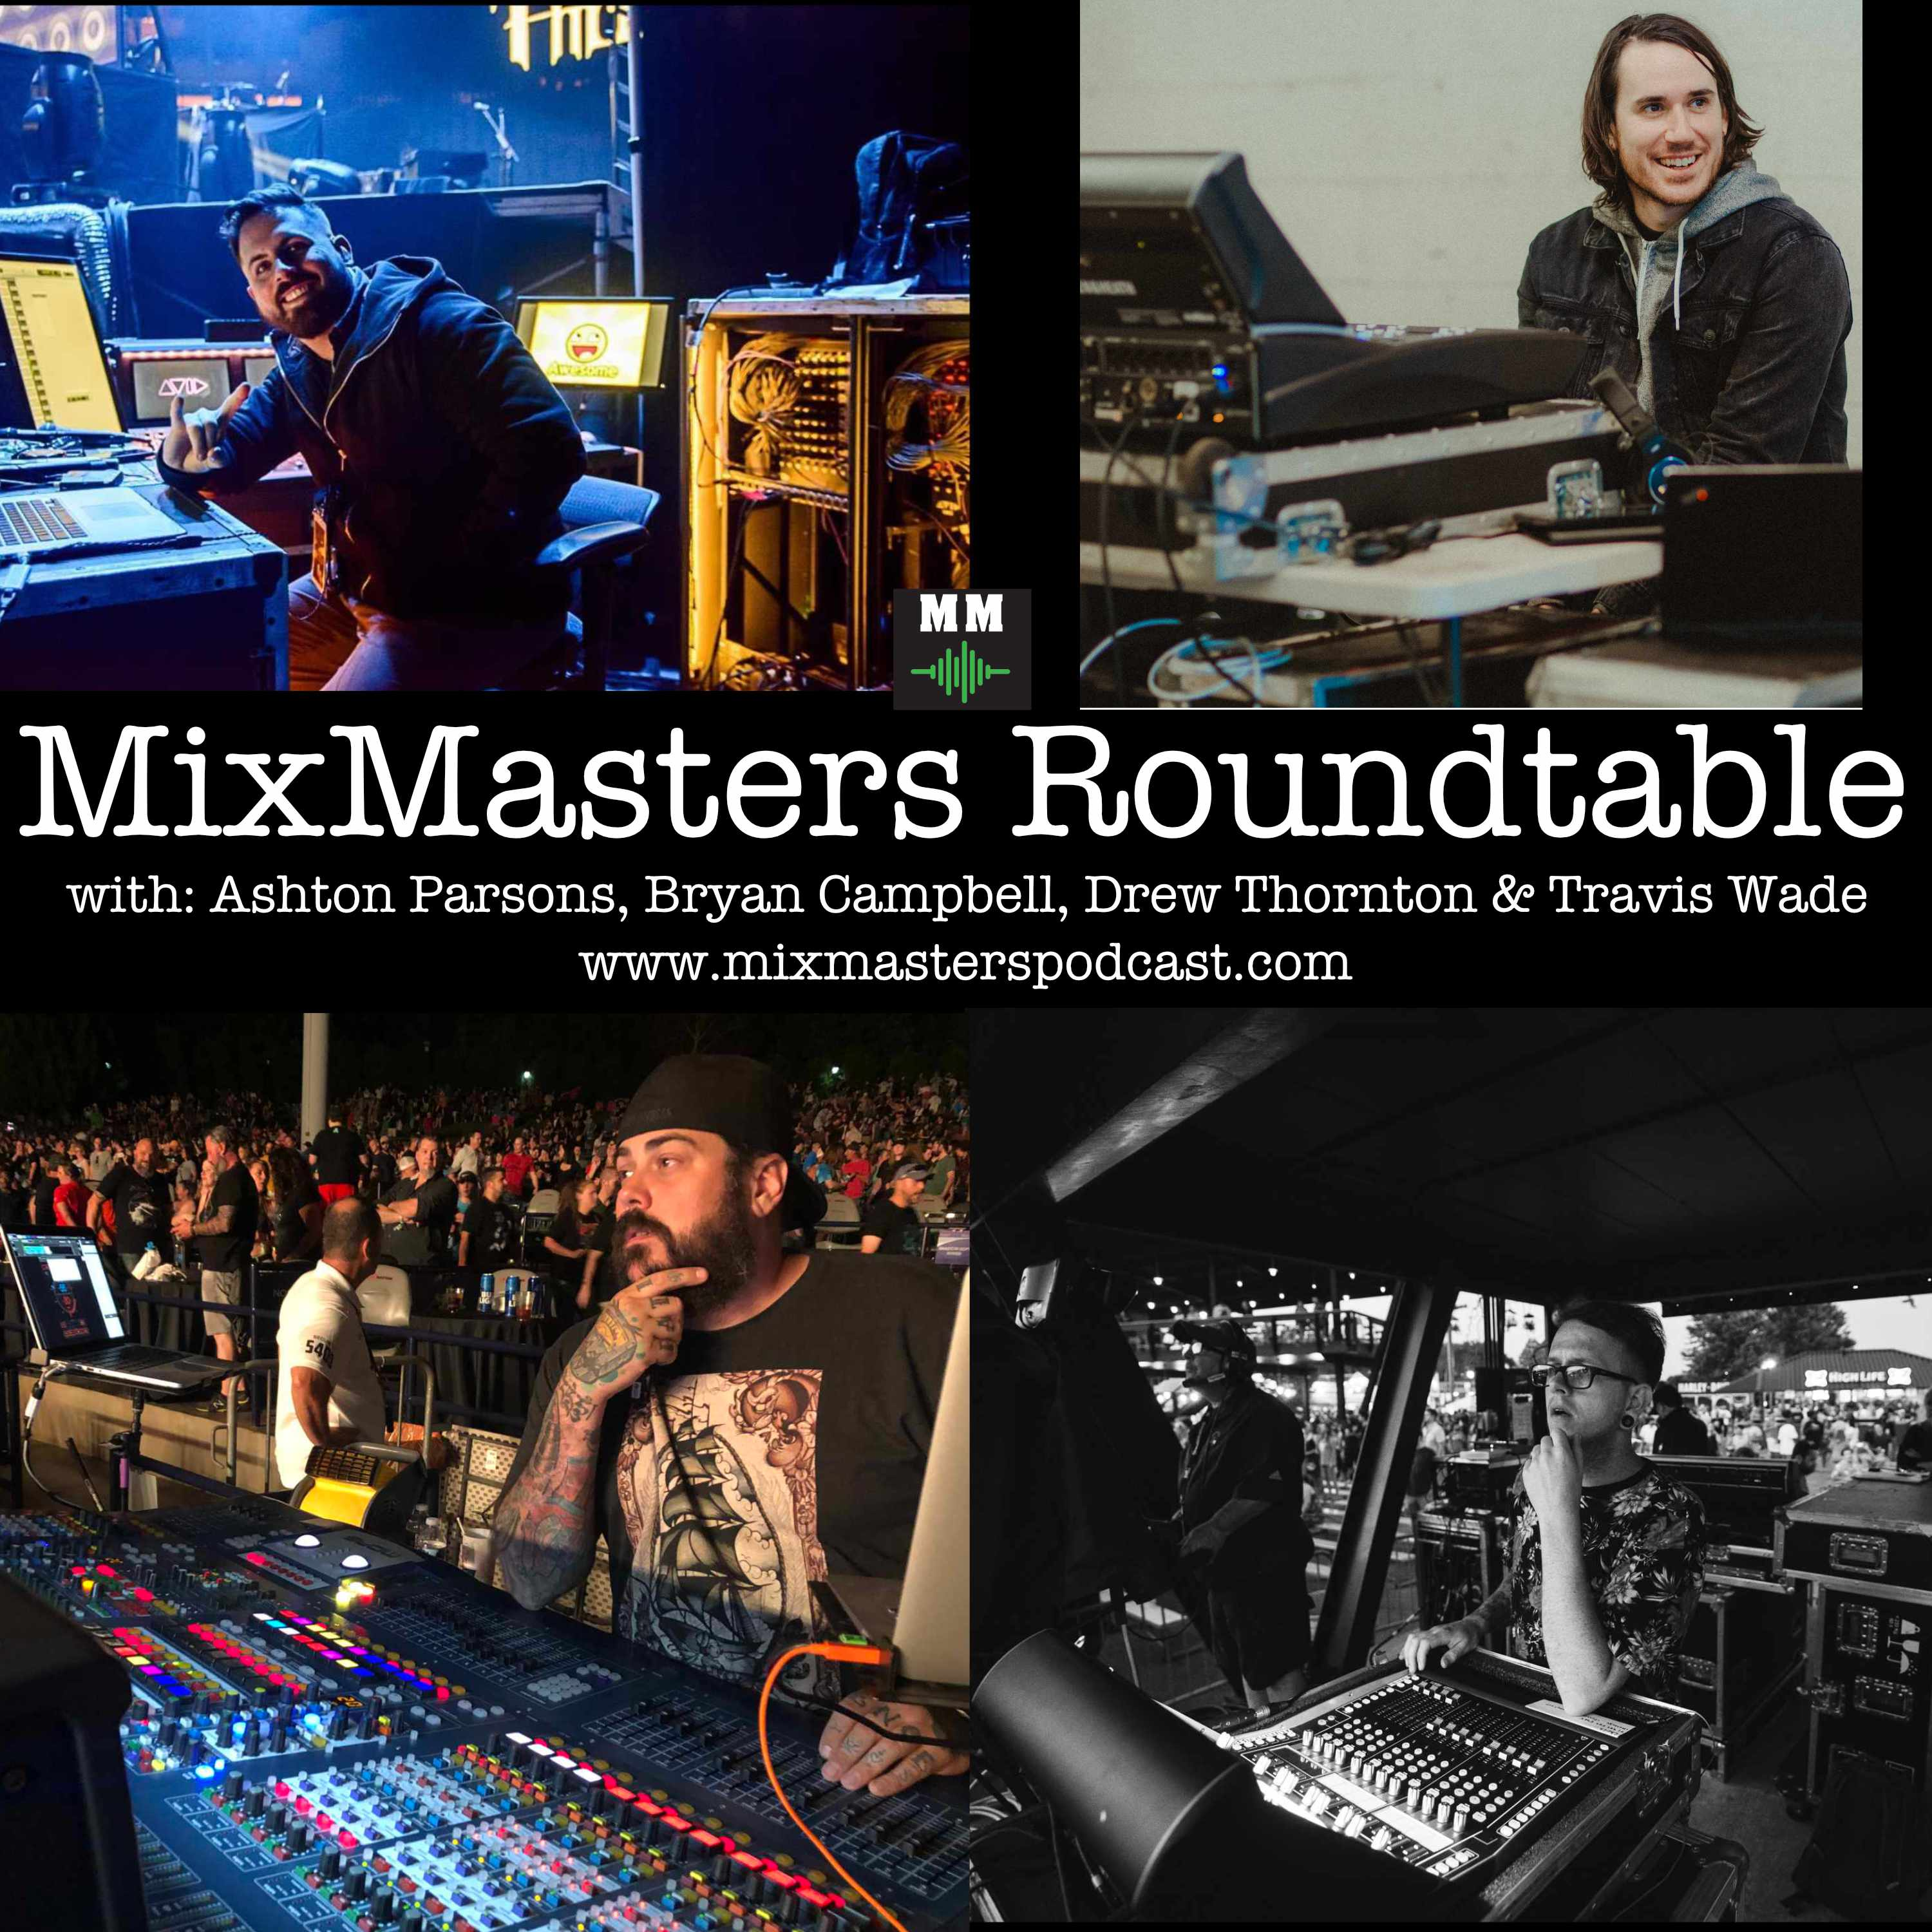 Artwork for podcast MixMasters